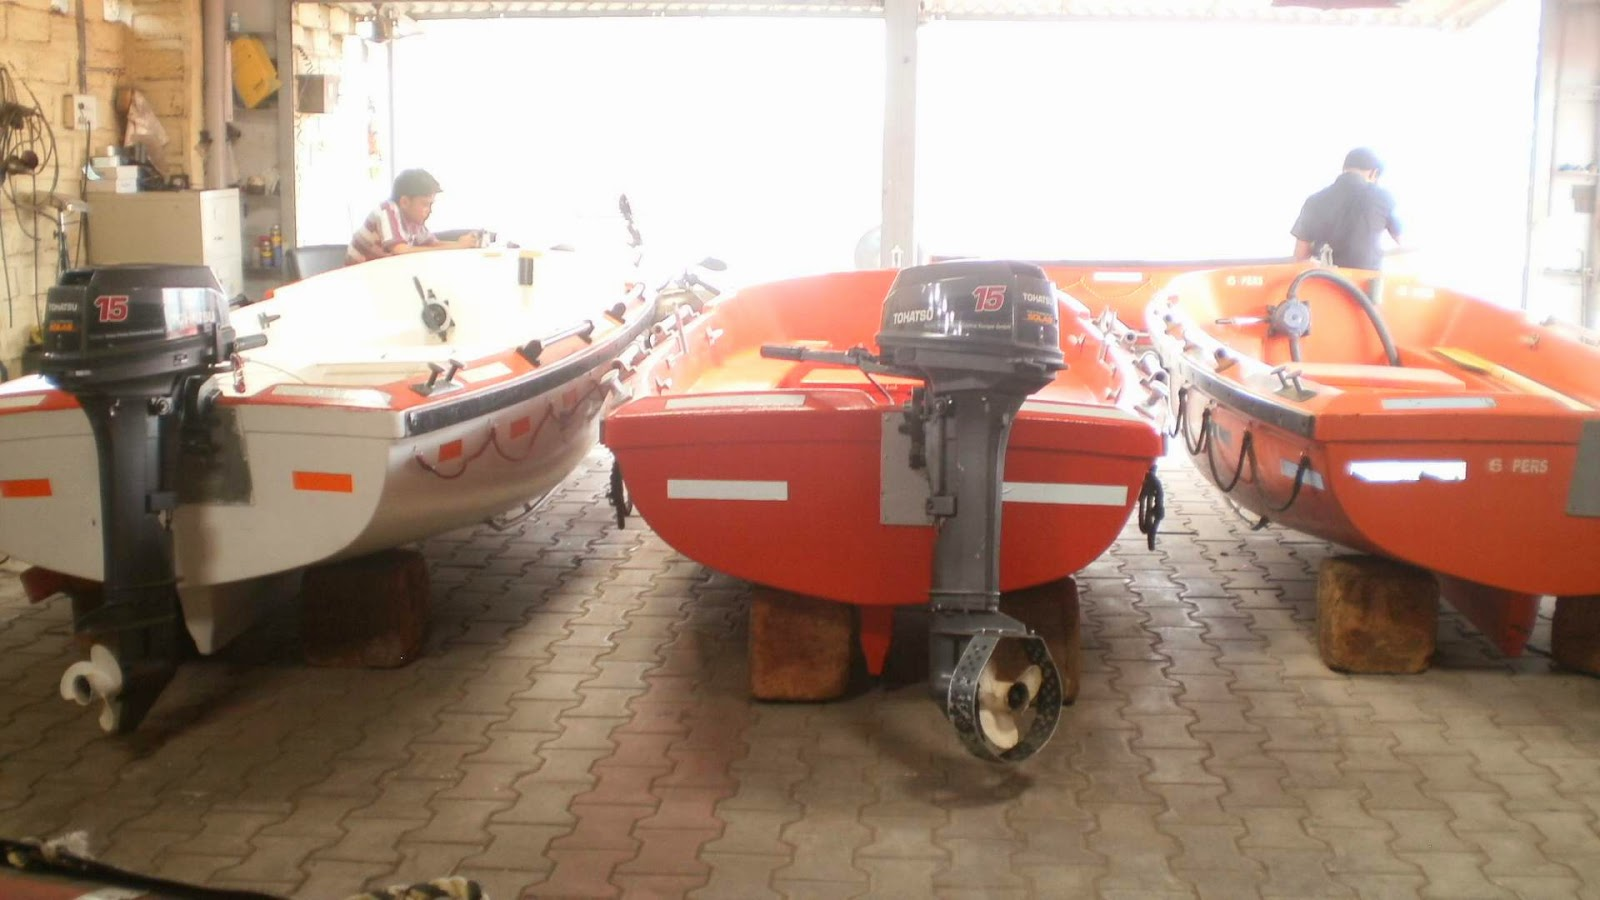 used outboard engine and boats for sale, used fiber boats for fishing, river boats, small boats for sale